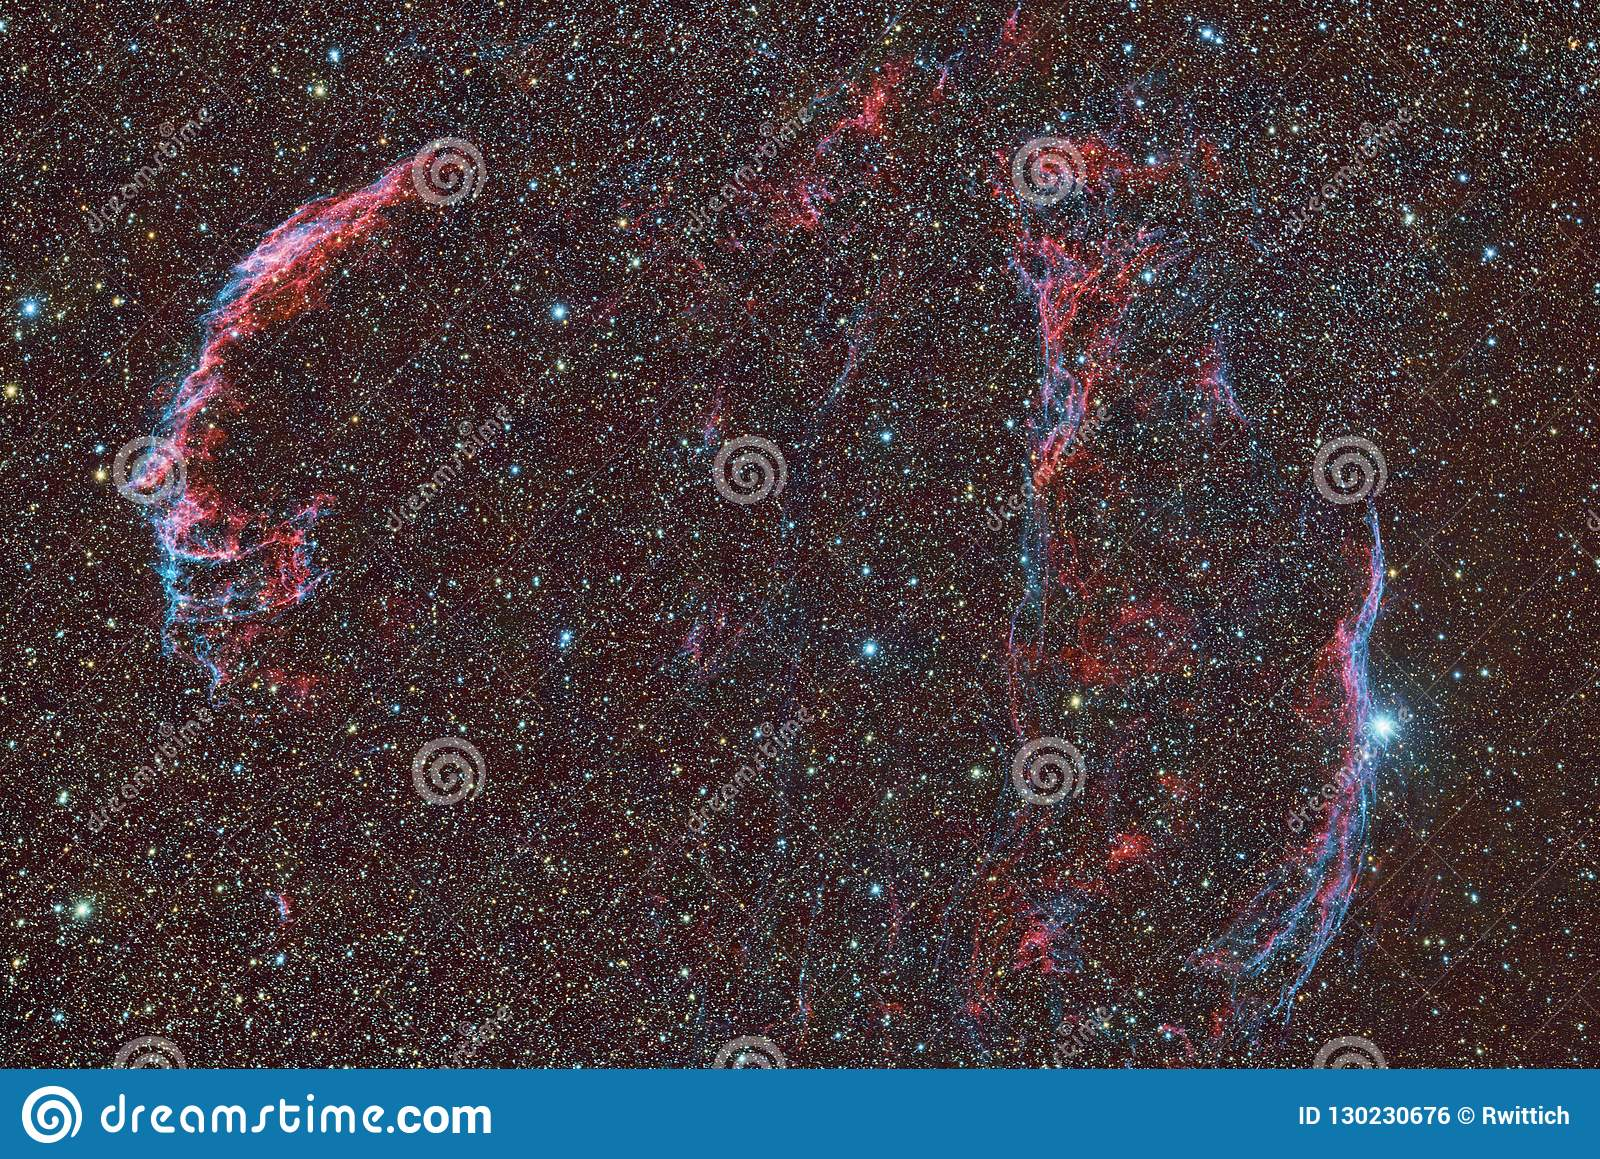 Veil Nebula entire field